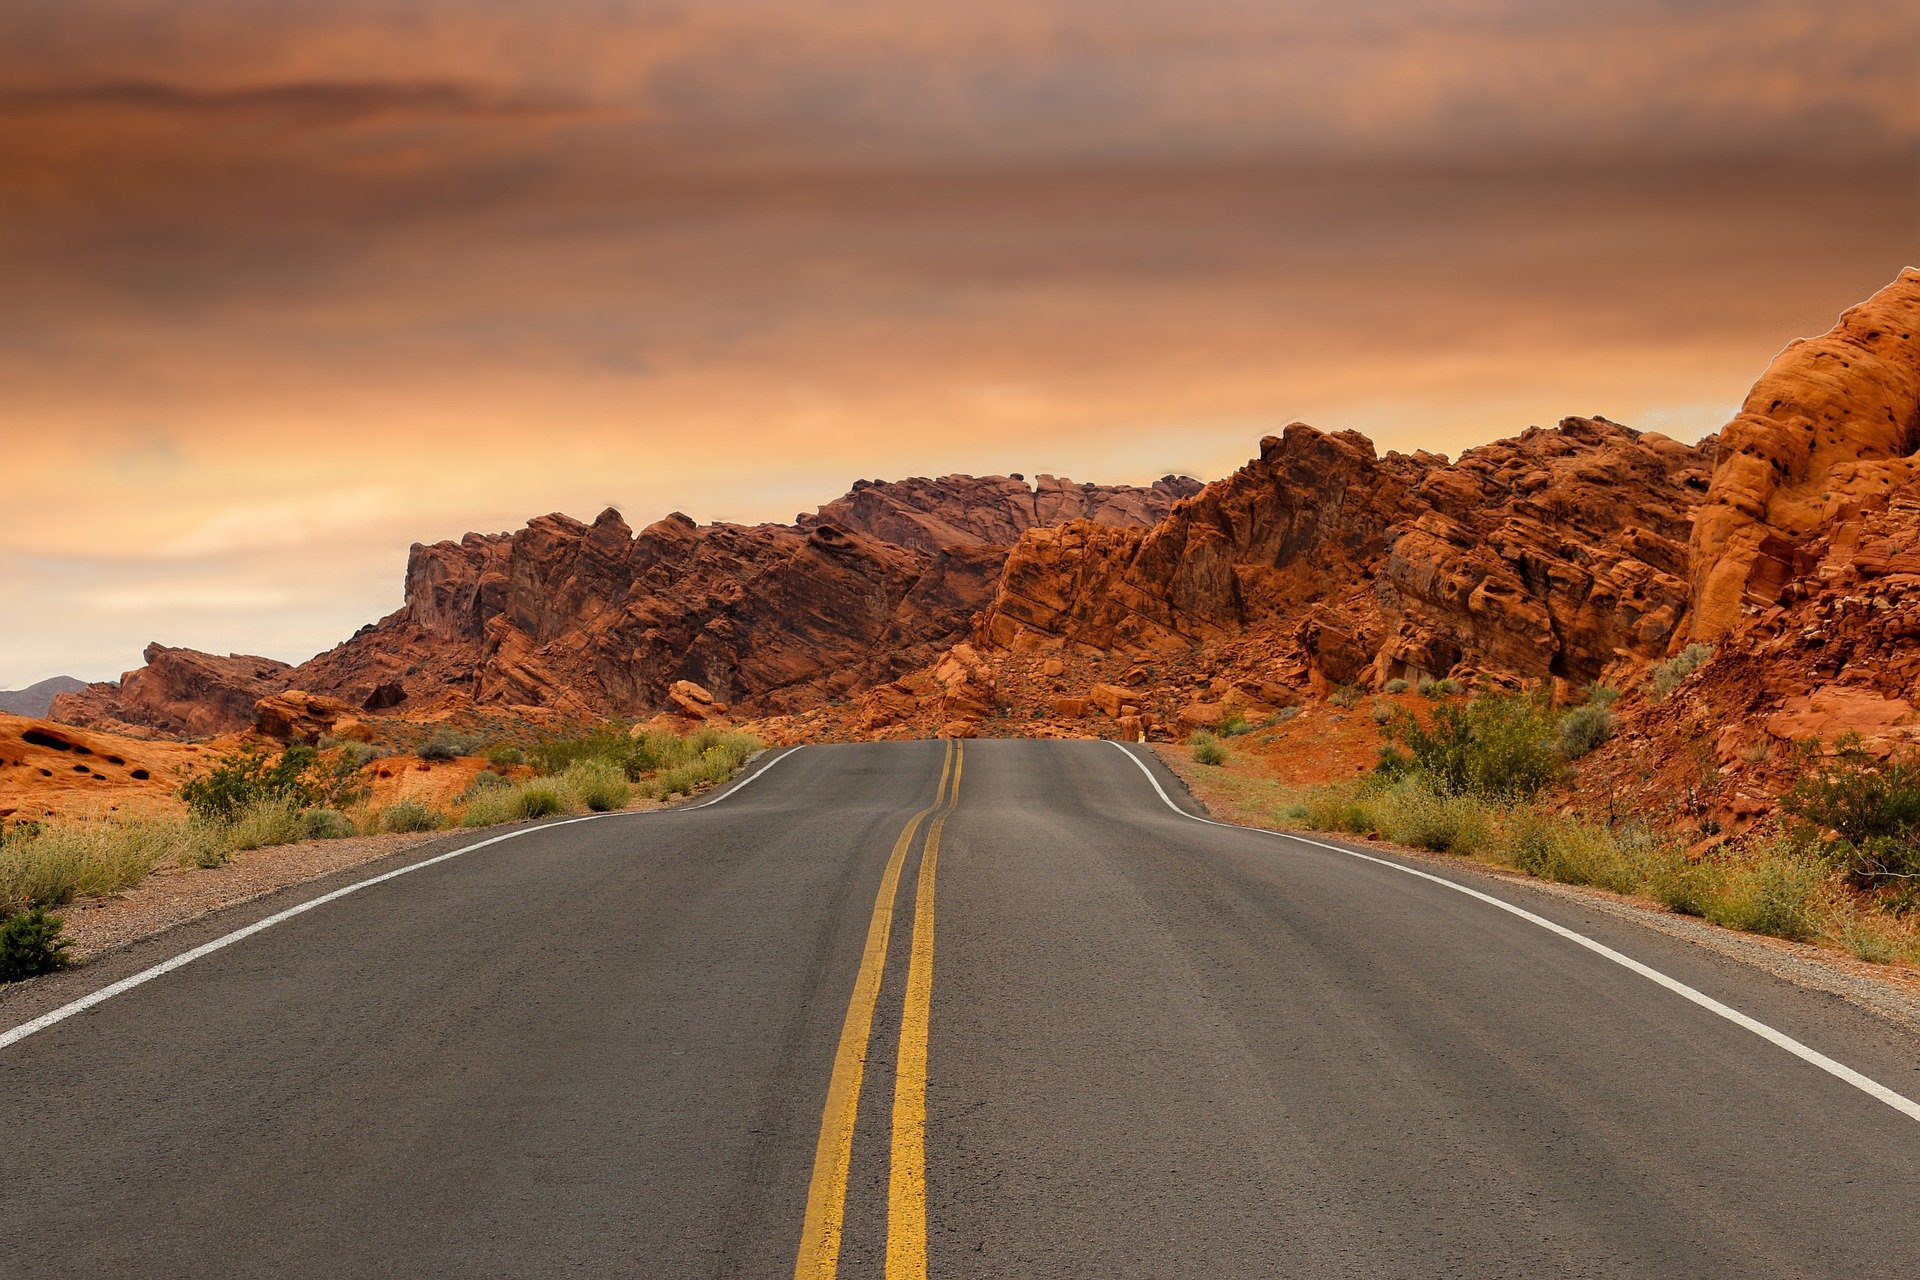 A road to take when moving from Virginia to Nevada.